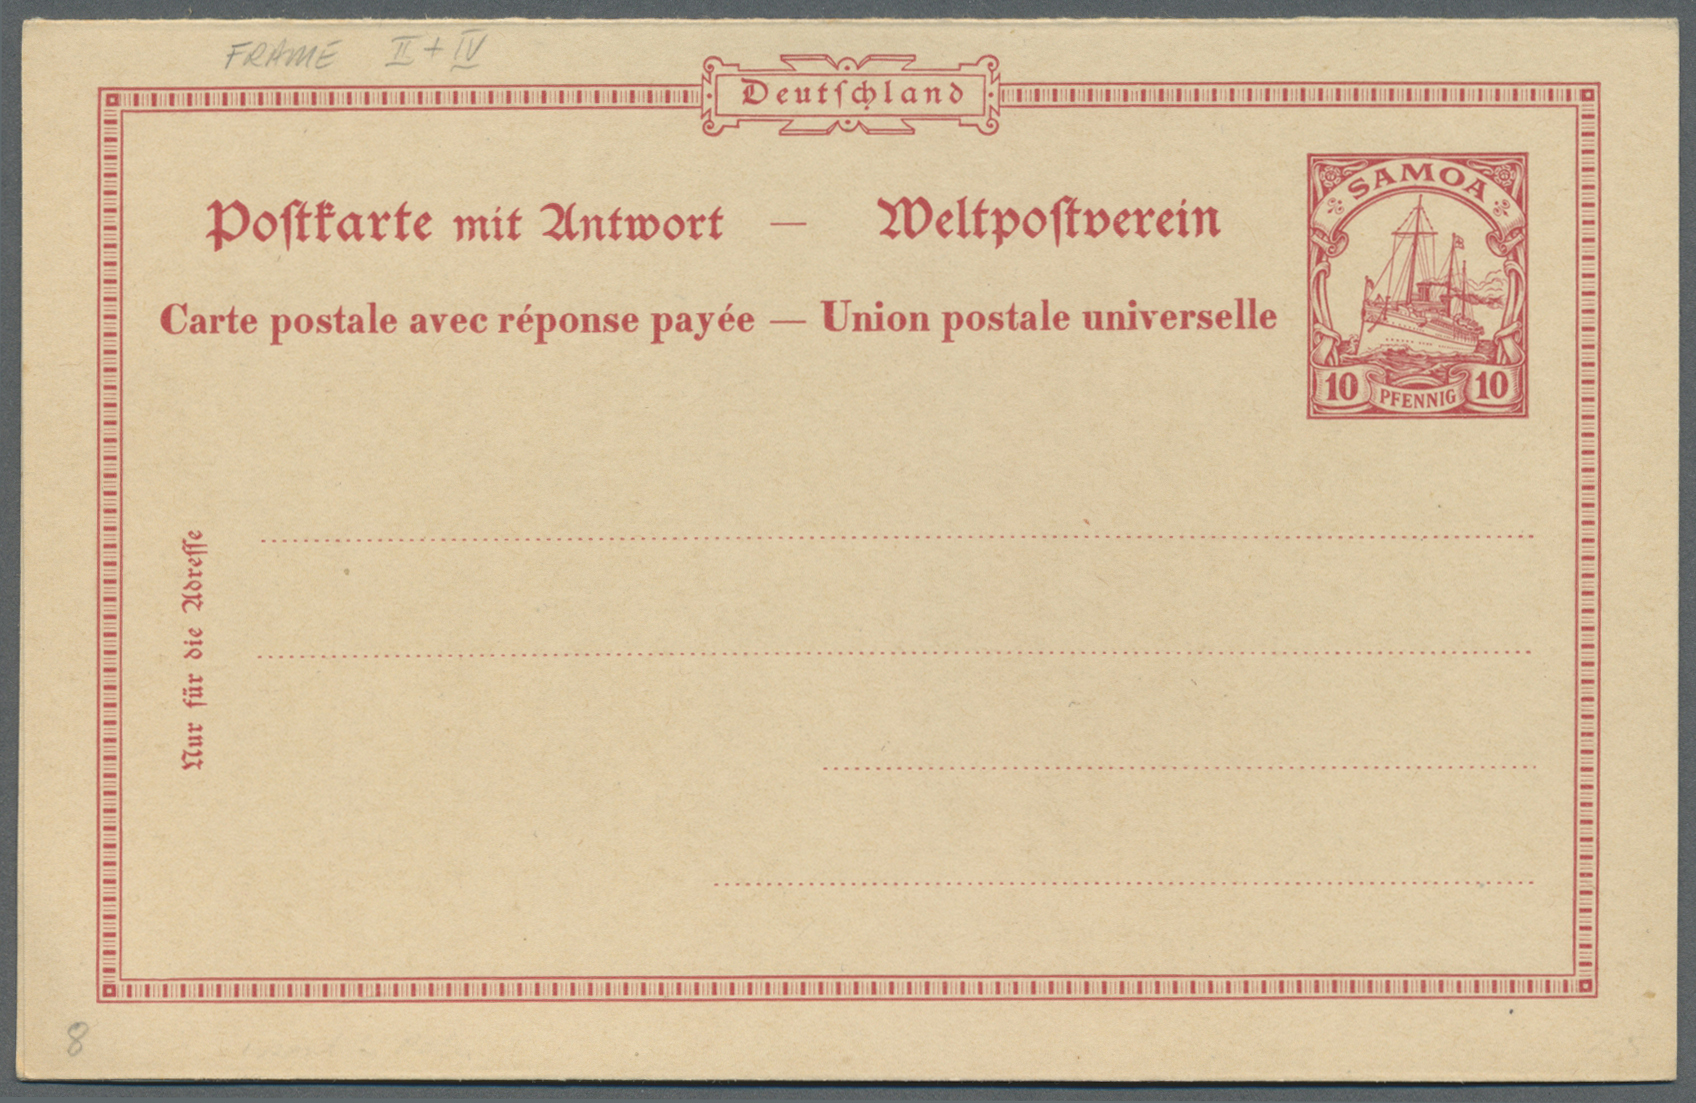 Lot 37242 - deutsche kolonien  -  Auktionshaus Christoph Gärtner GmbH & Co. KG Collections Germany,  Collections Supplement, Surprise boxes #39 Day 7